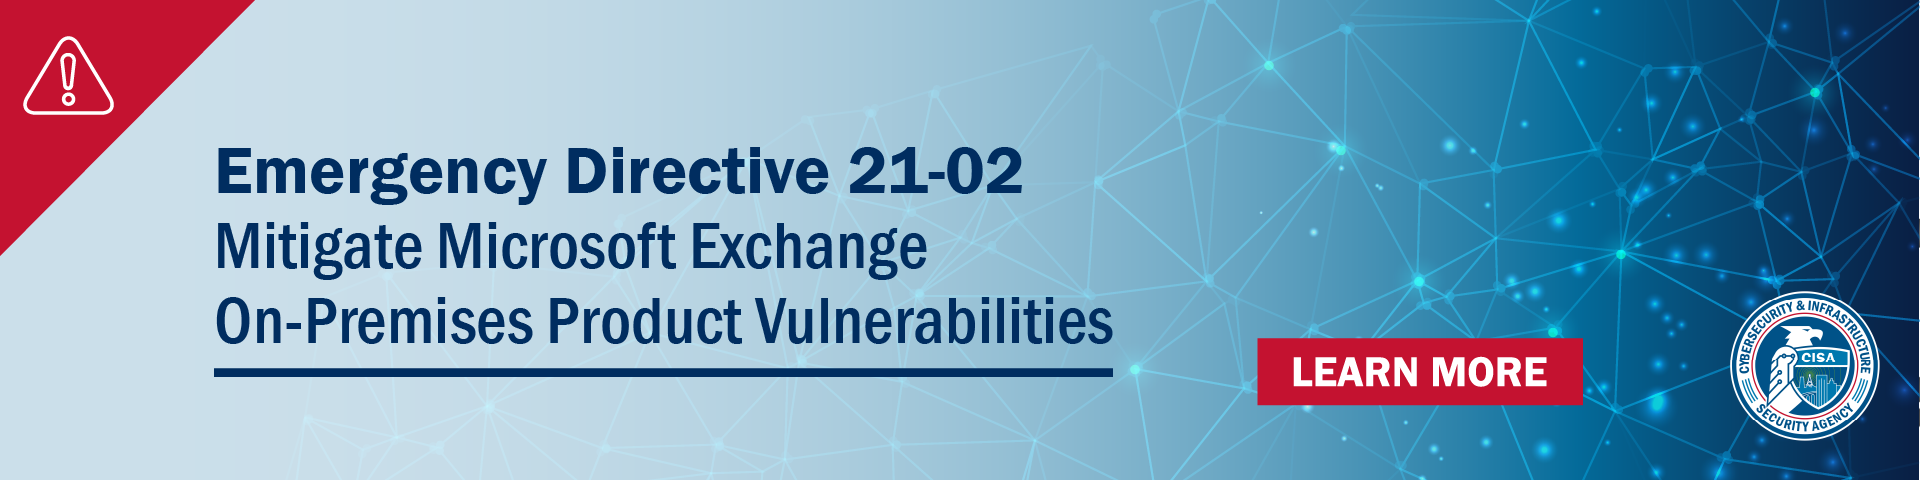 Cybersecurity & Infrastructure Security Agency (CISA) Issues Emergency Directive Requiring Federal Agencies to Patch Critical Vulnerability